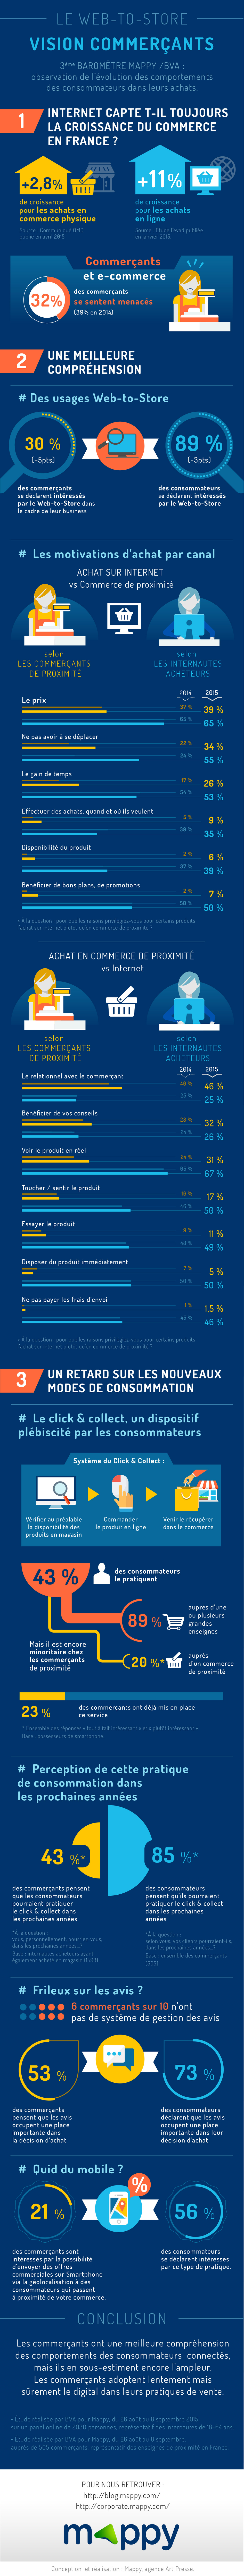 Infographie web-to-store commerçants